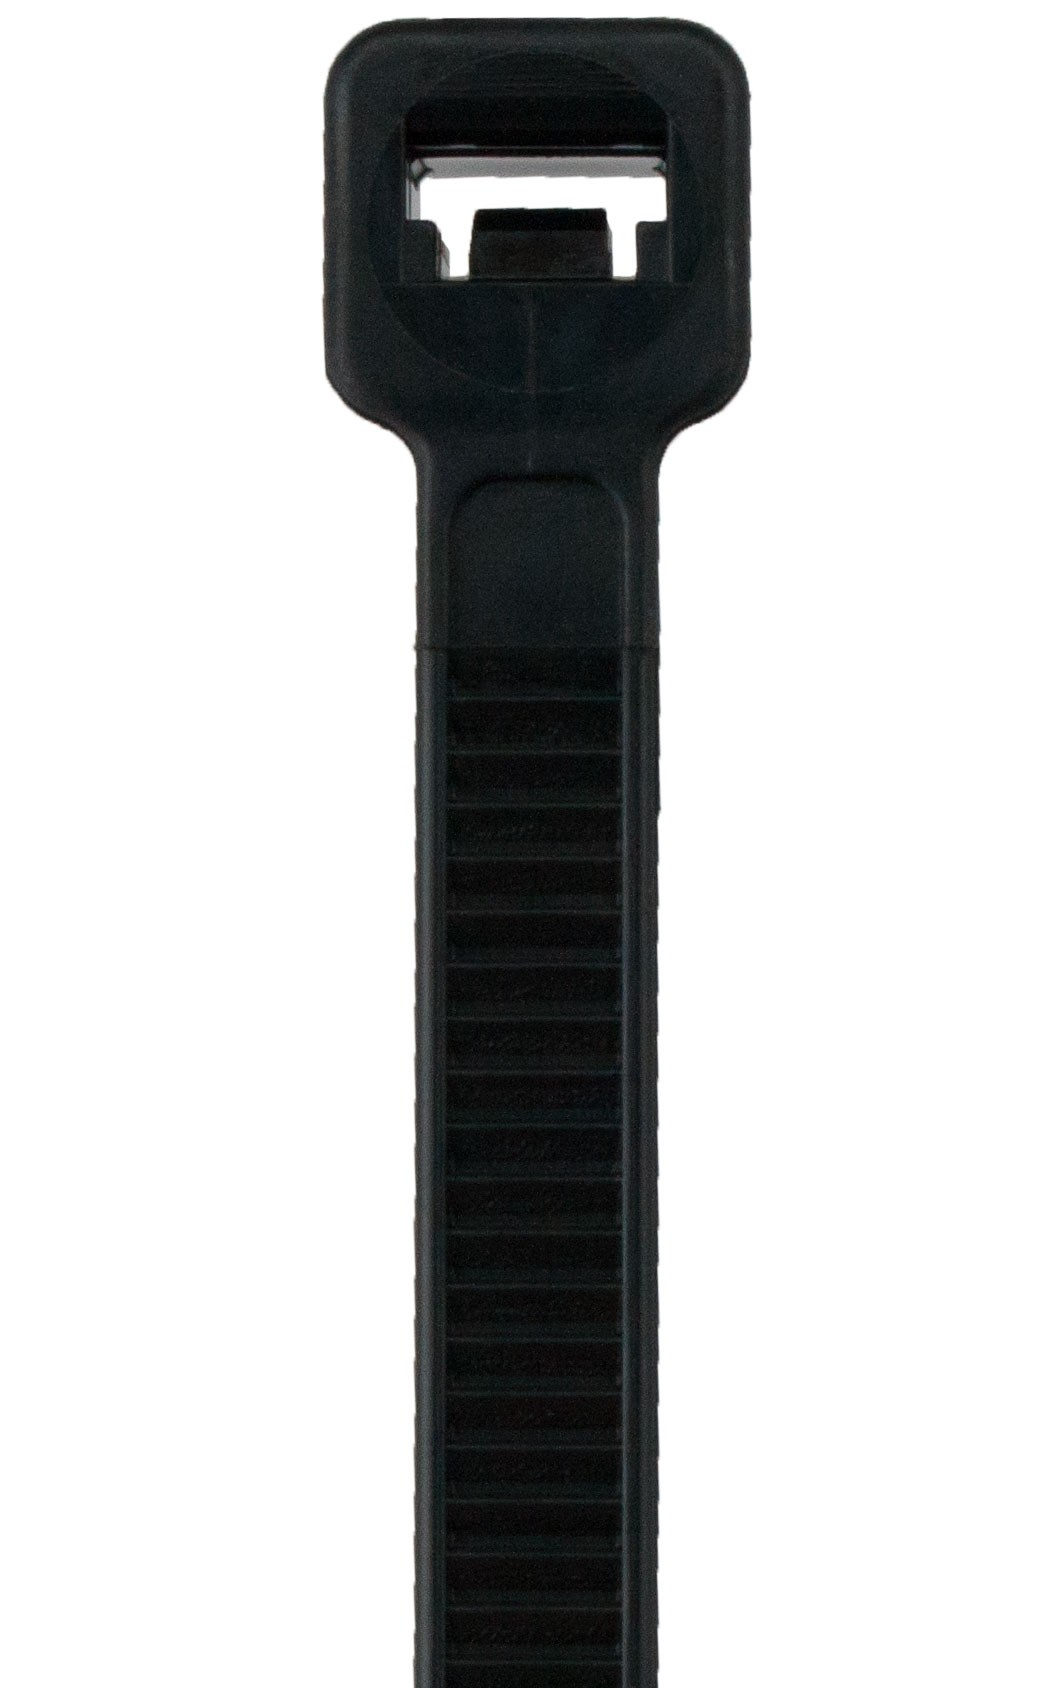 Black 11inch Cable Ties 25 Pack